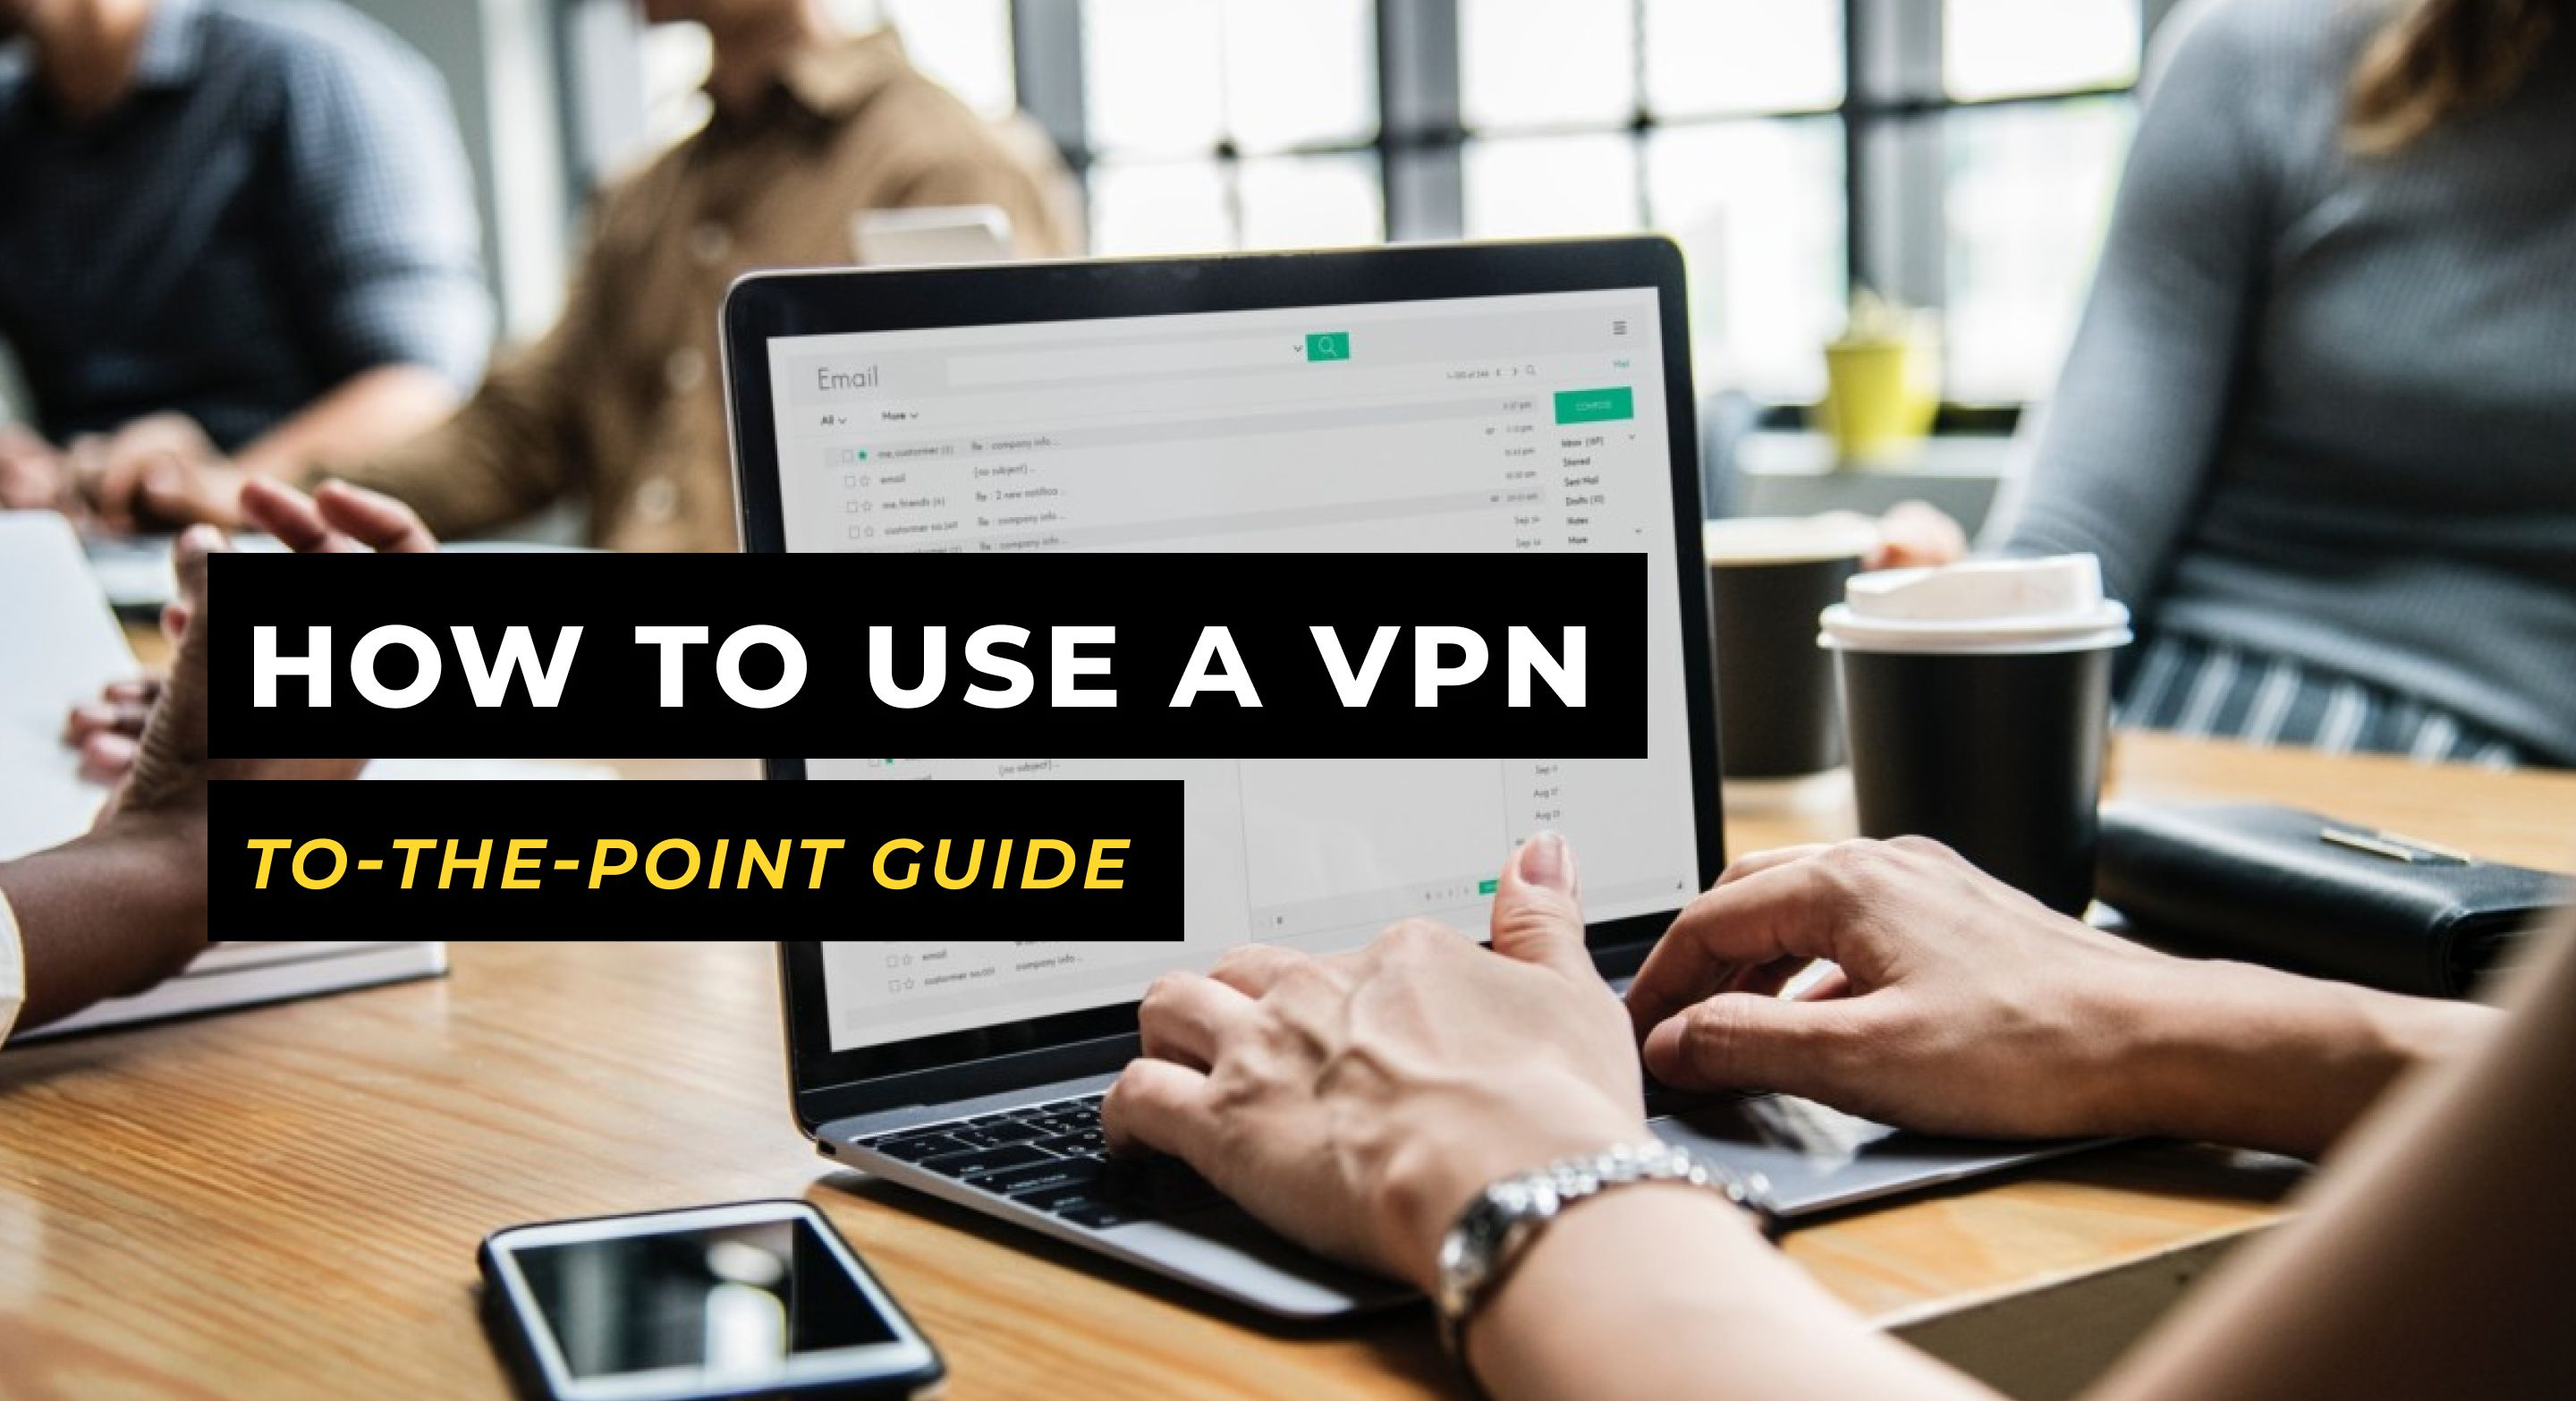 107aa29e6321b02790eb79f3f693d2f0 - Can You Use A Vpn In Dubai